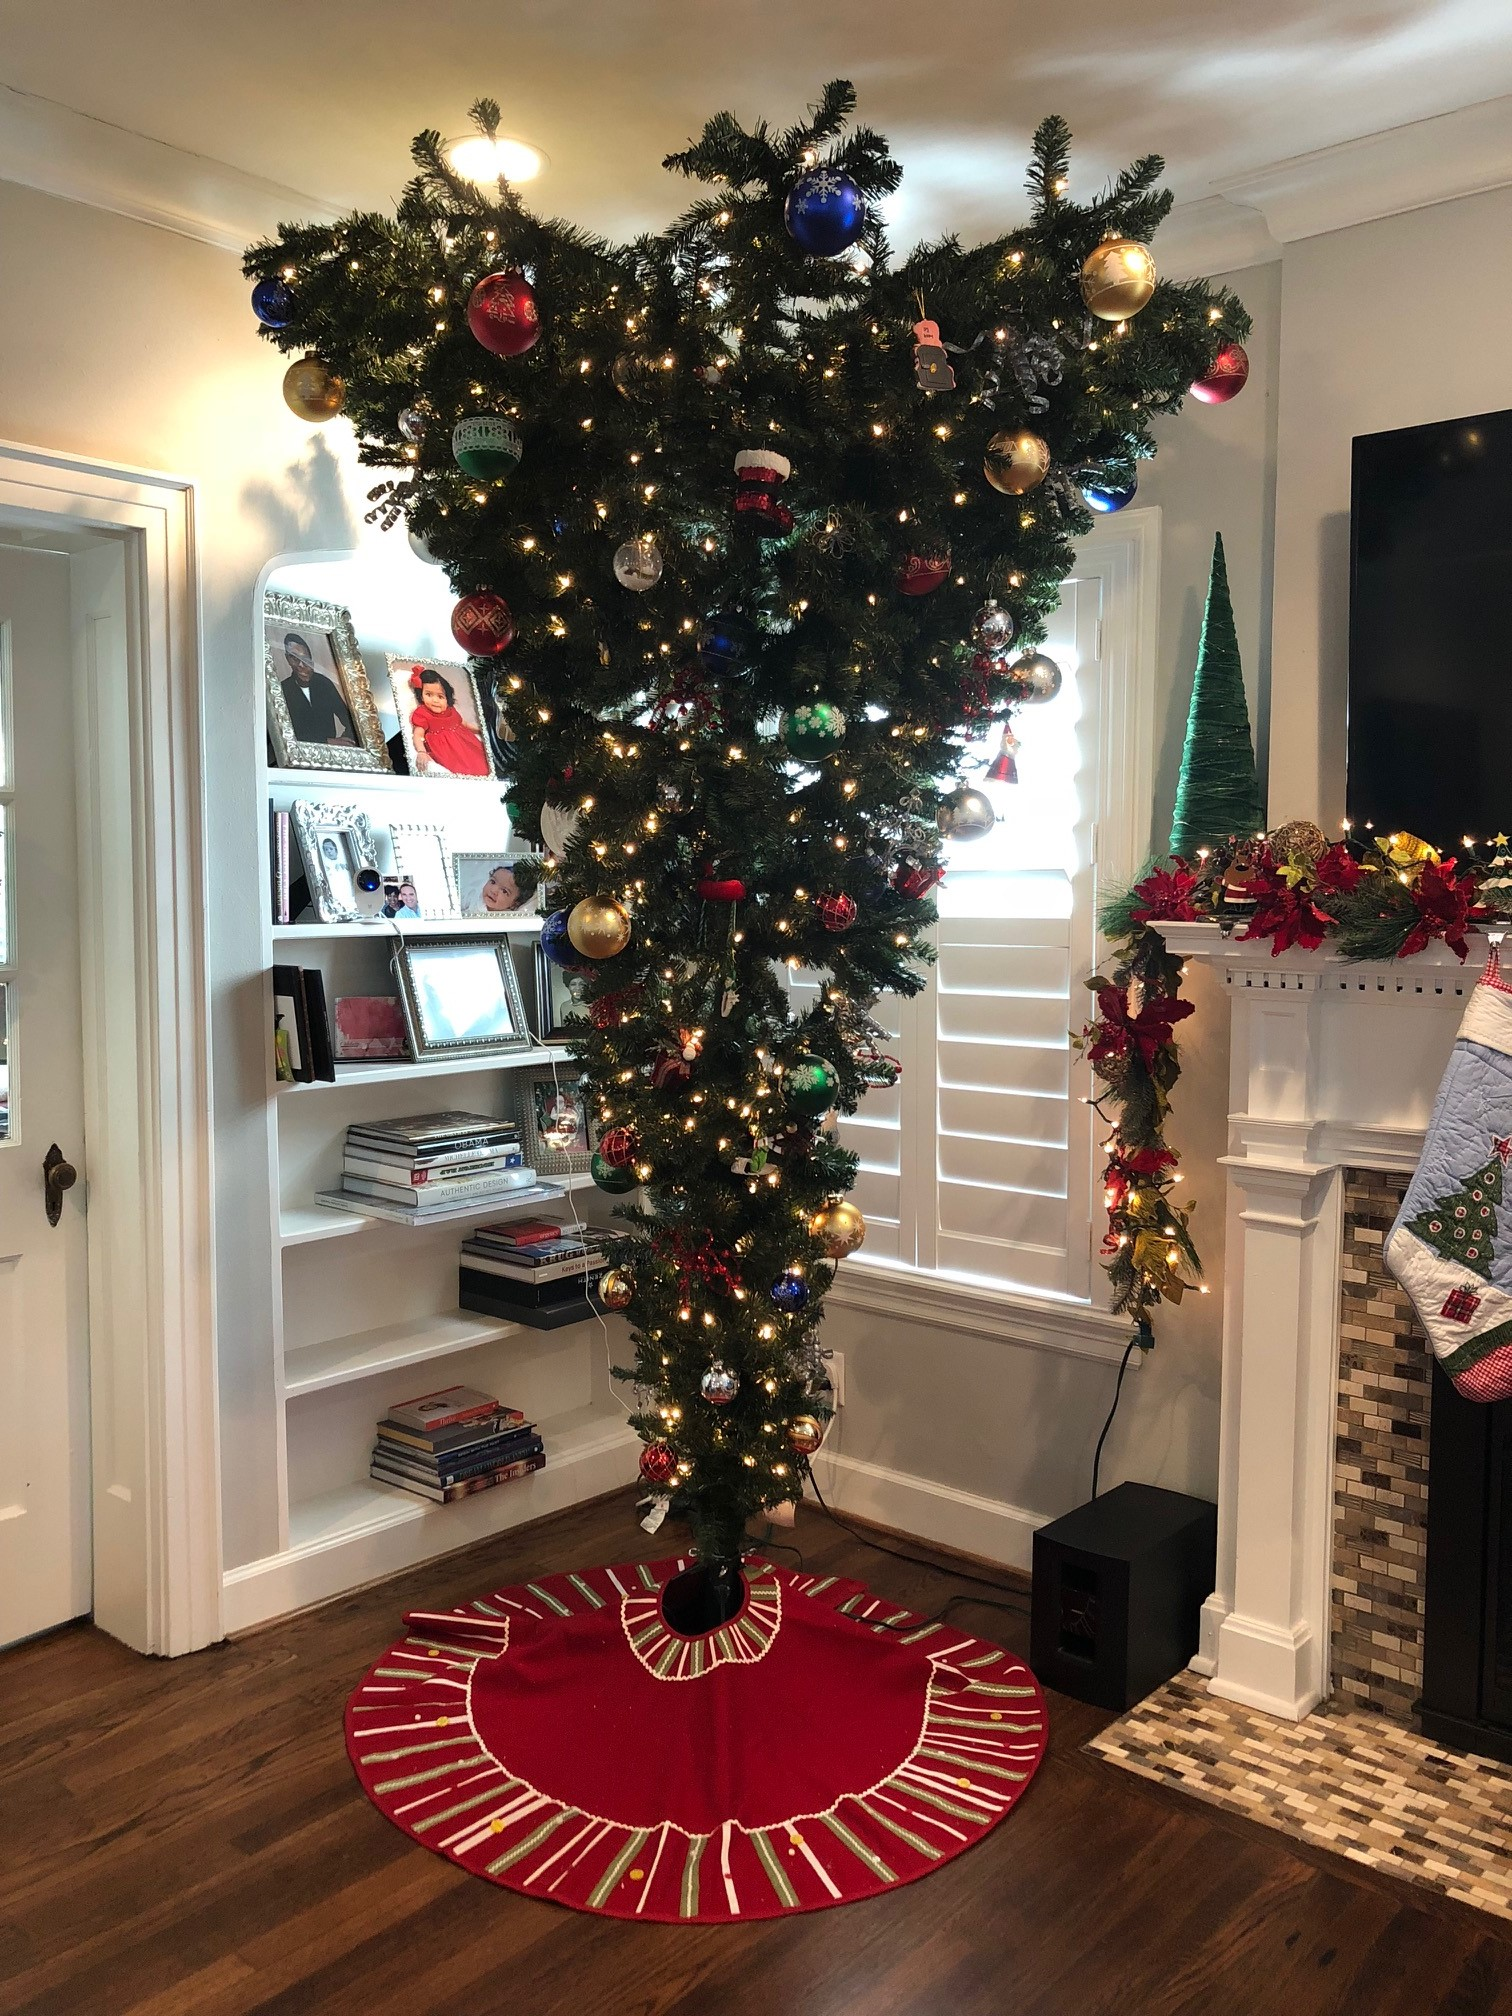 What S Up With The Upside Down Christmas Tree Houstonchronicle Com Download 870,497 christmas tree images and stock photos. upside down christmas tree